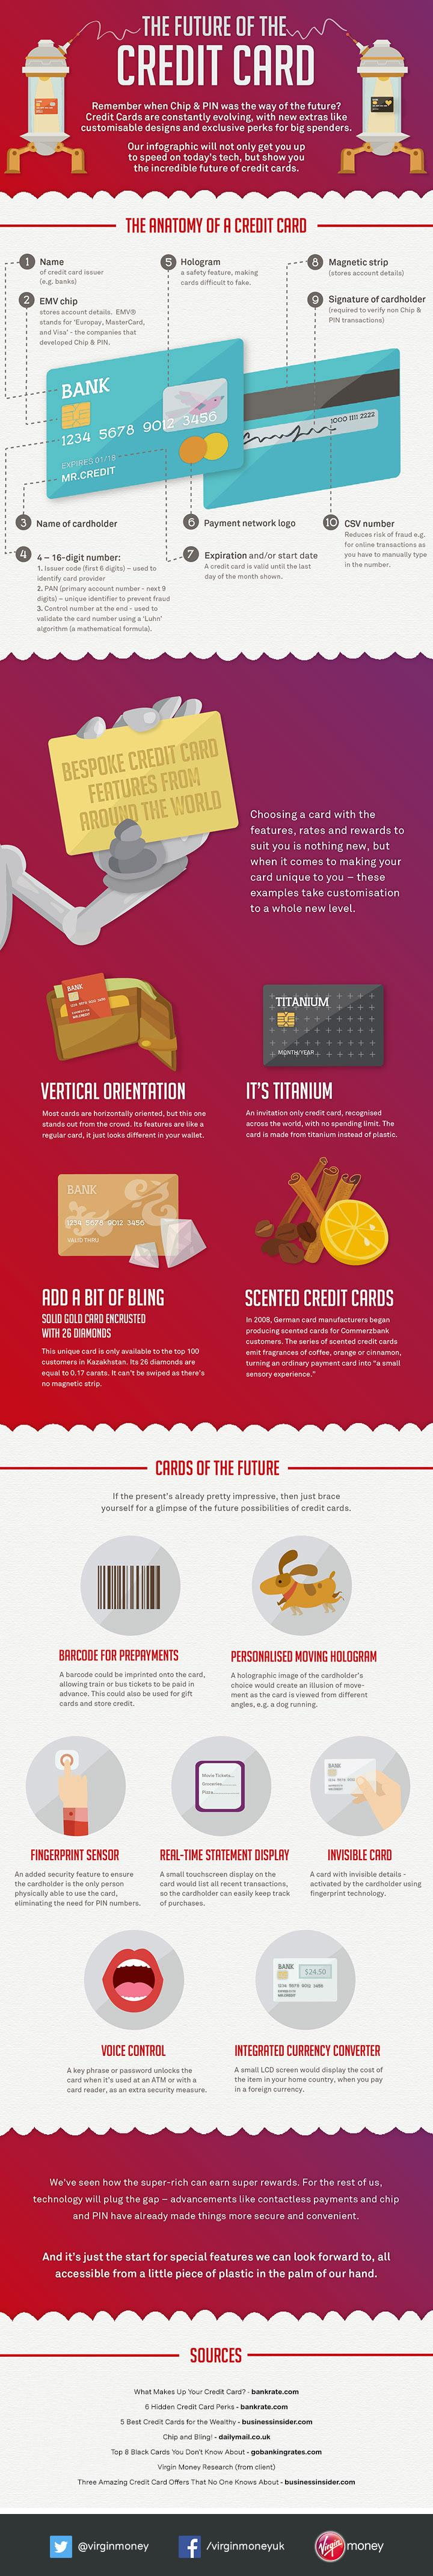 credit-card-infographic